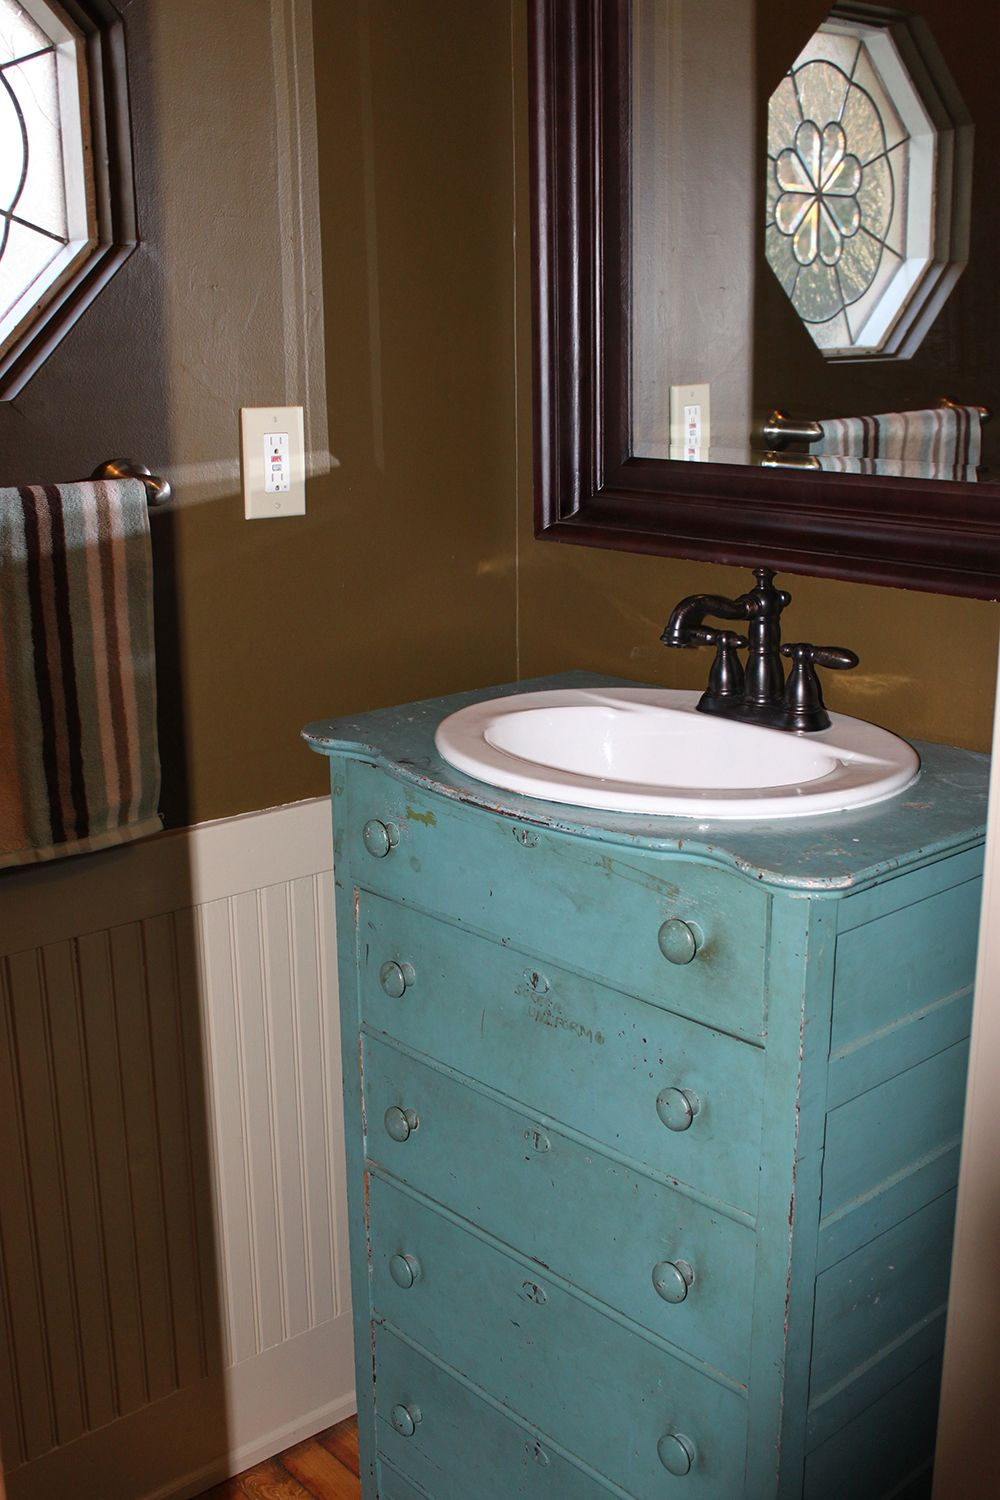 Dresser Turned Bathroom Vanity Tutorial: Mudroom Renovation: Old Dresser Re-purposed Into A